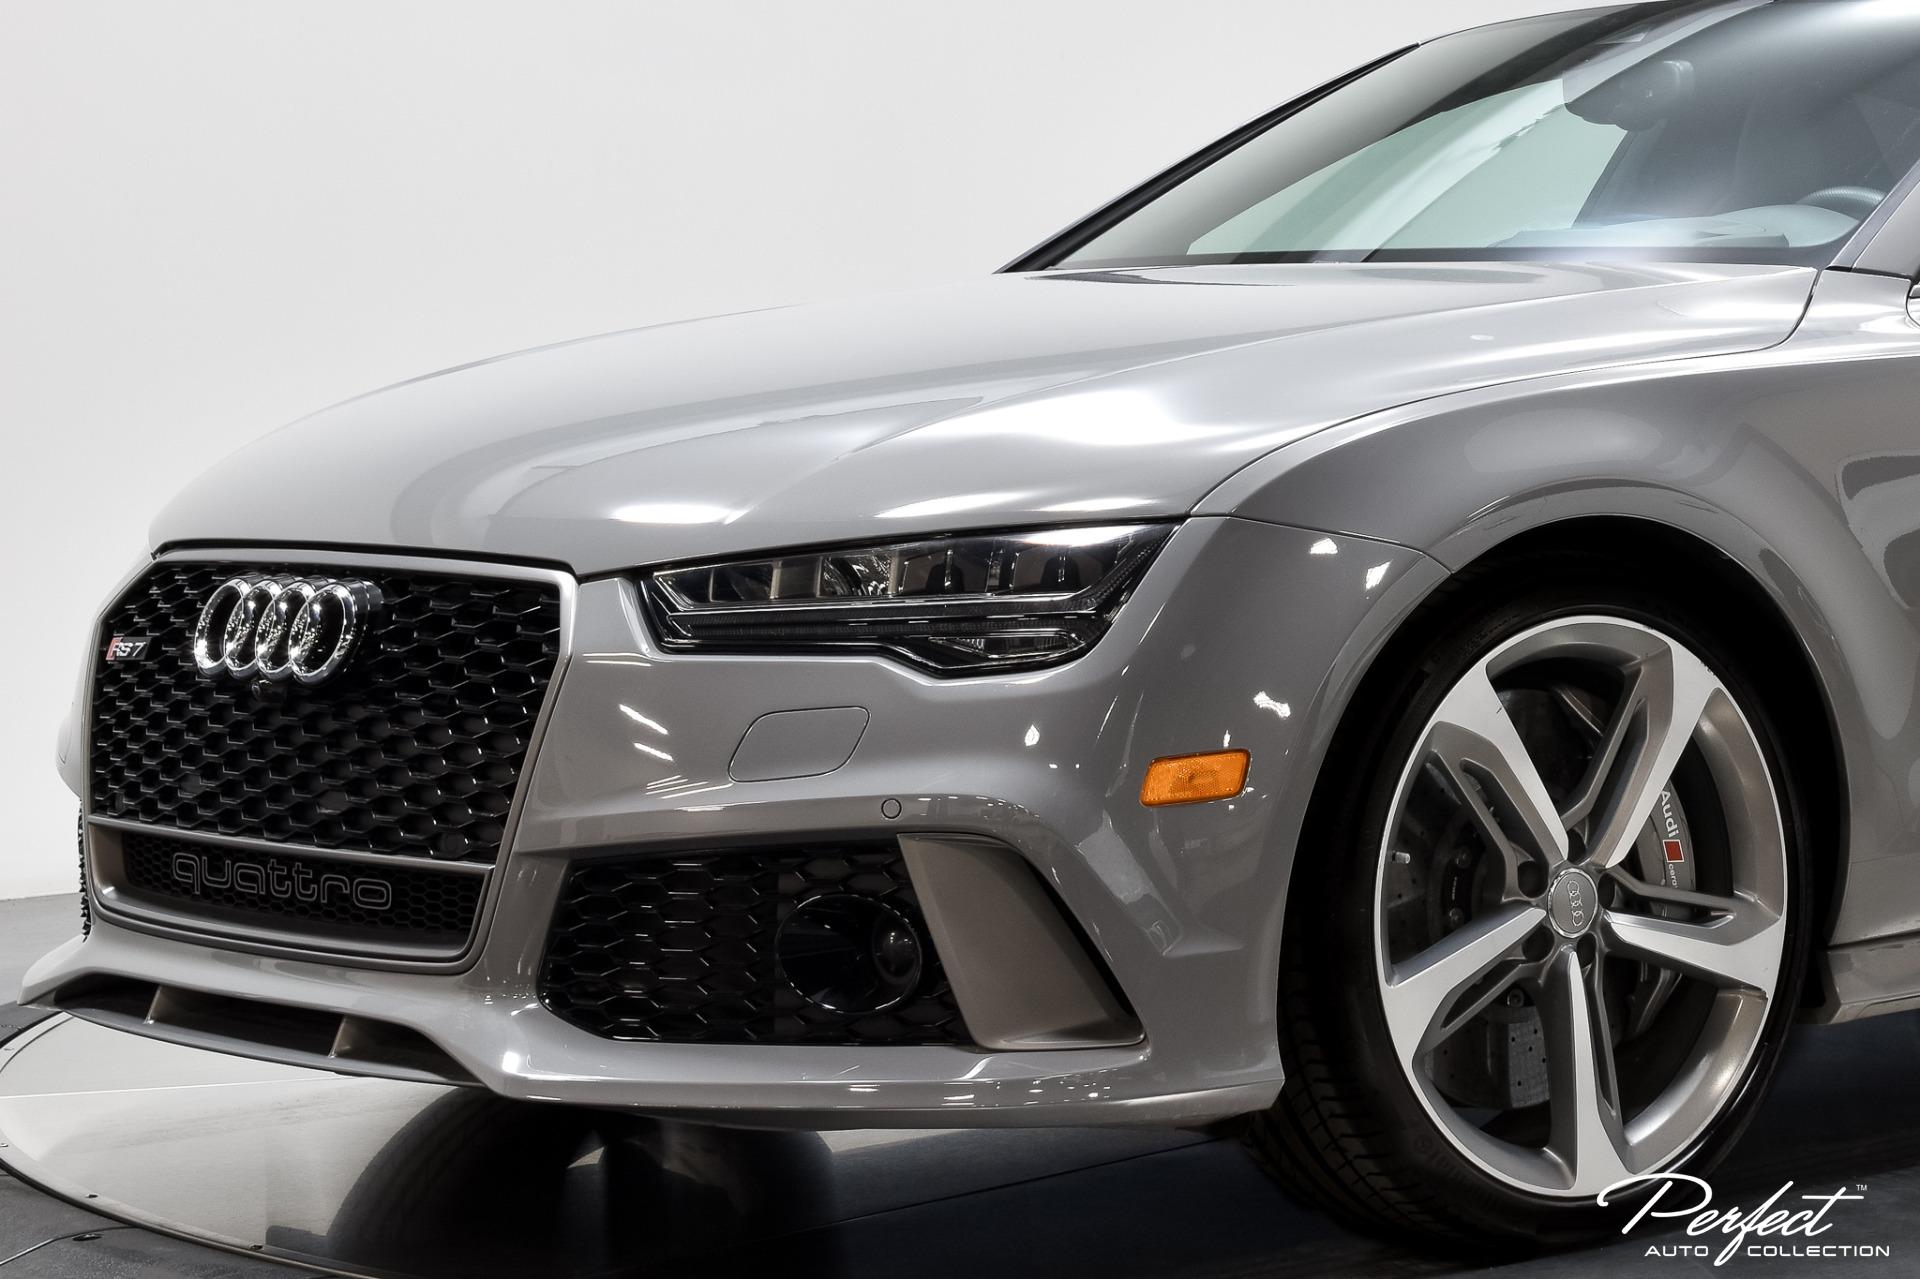 Used 2016 Audi RS 7 quattro performance Prestige for sale $74,495 at Perfect Auto Collection in Akron OH 44310 4